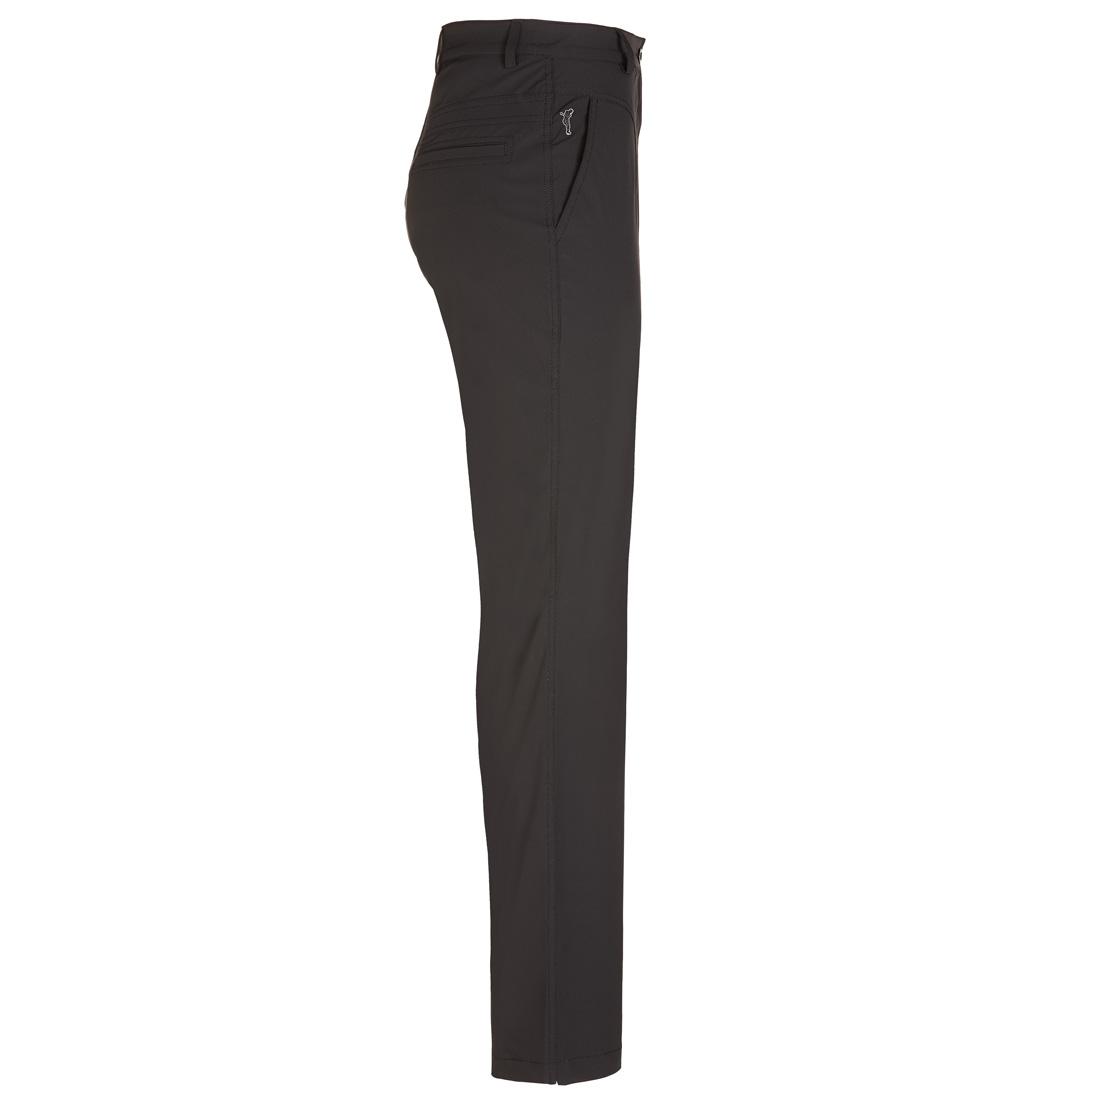 Wasserabweisende Damen Golfhose aus Thermo Stretch in Regular Fit